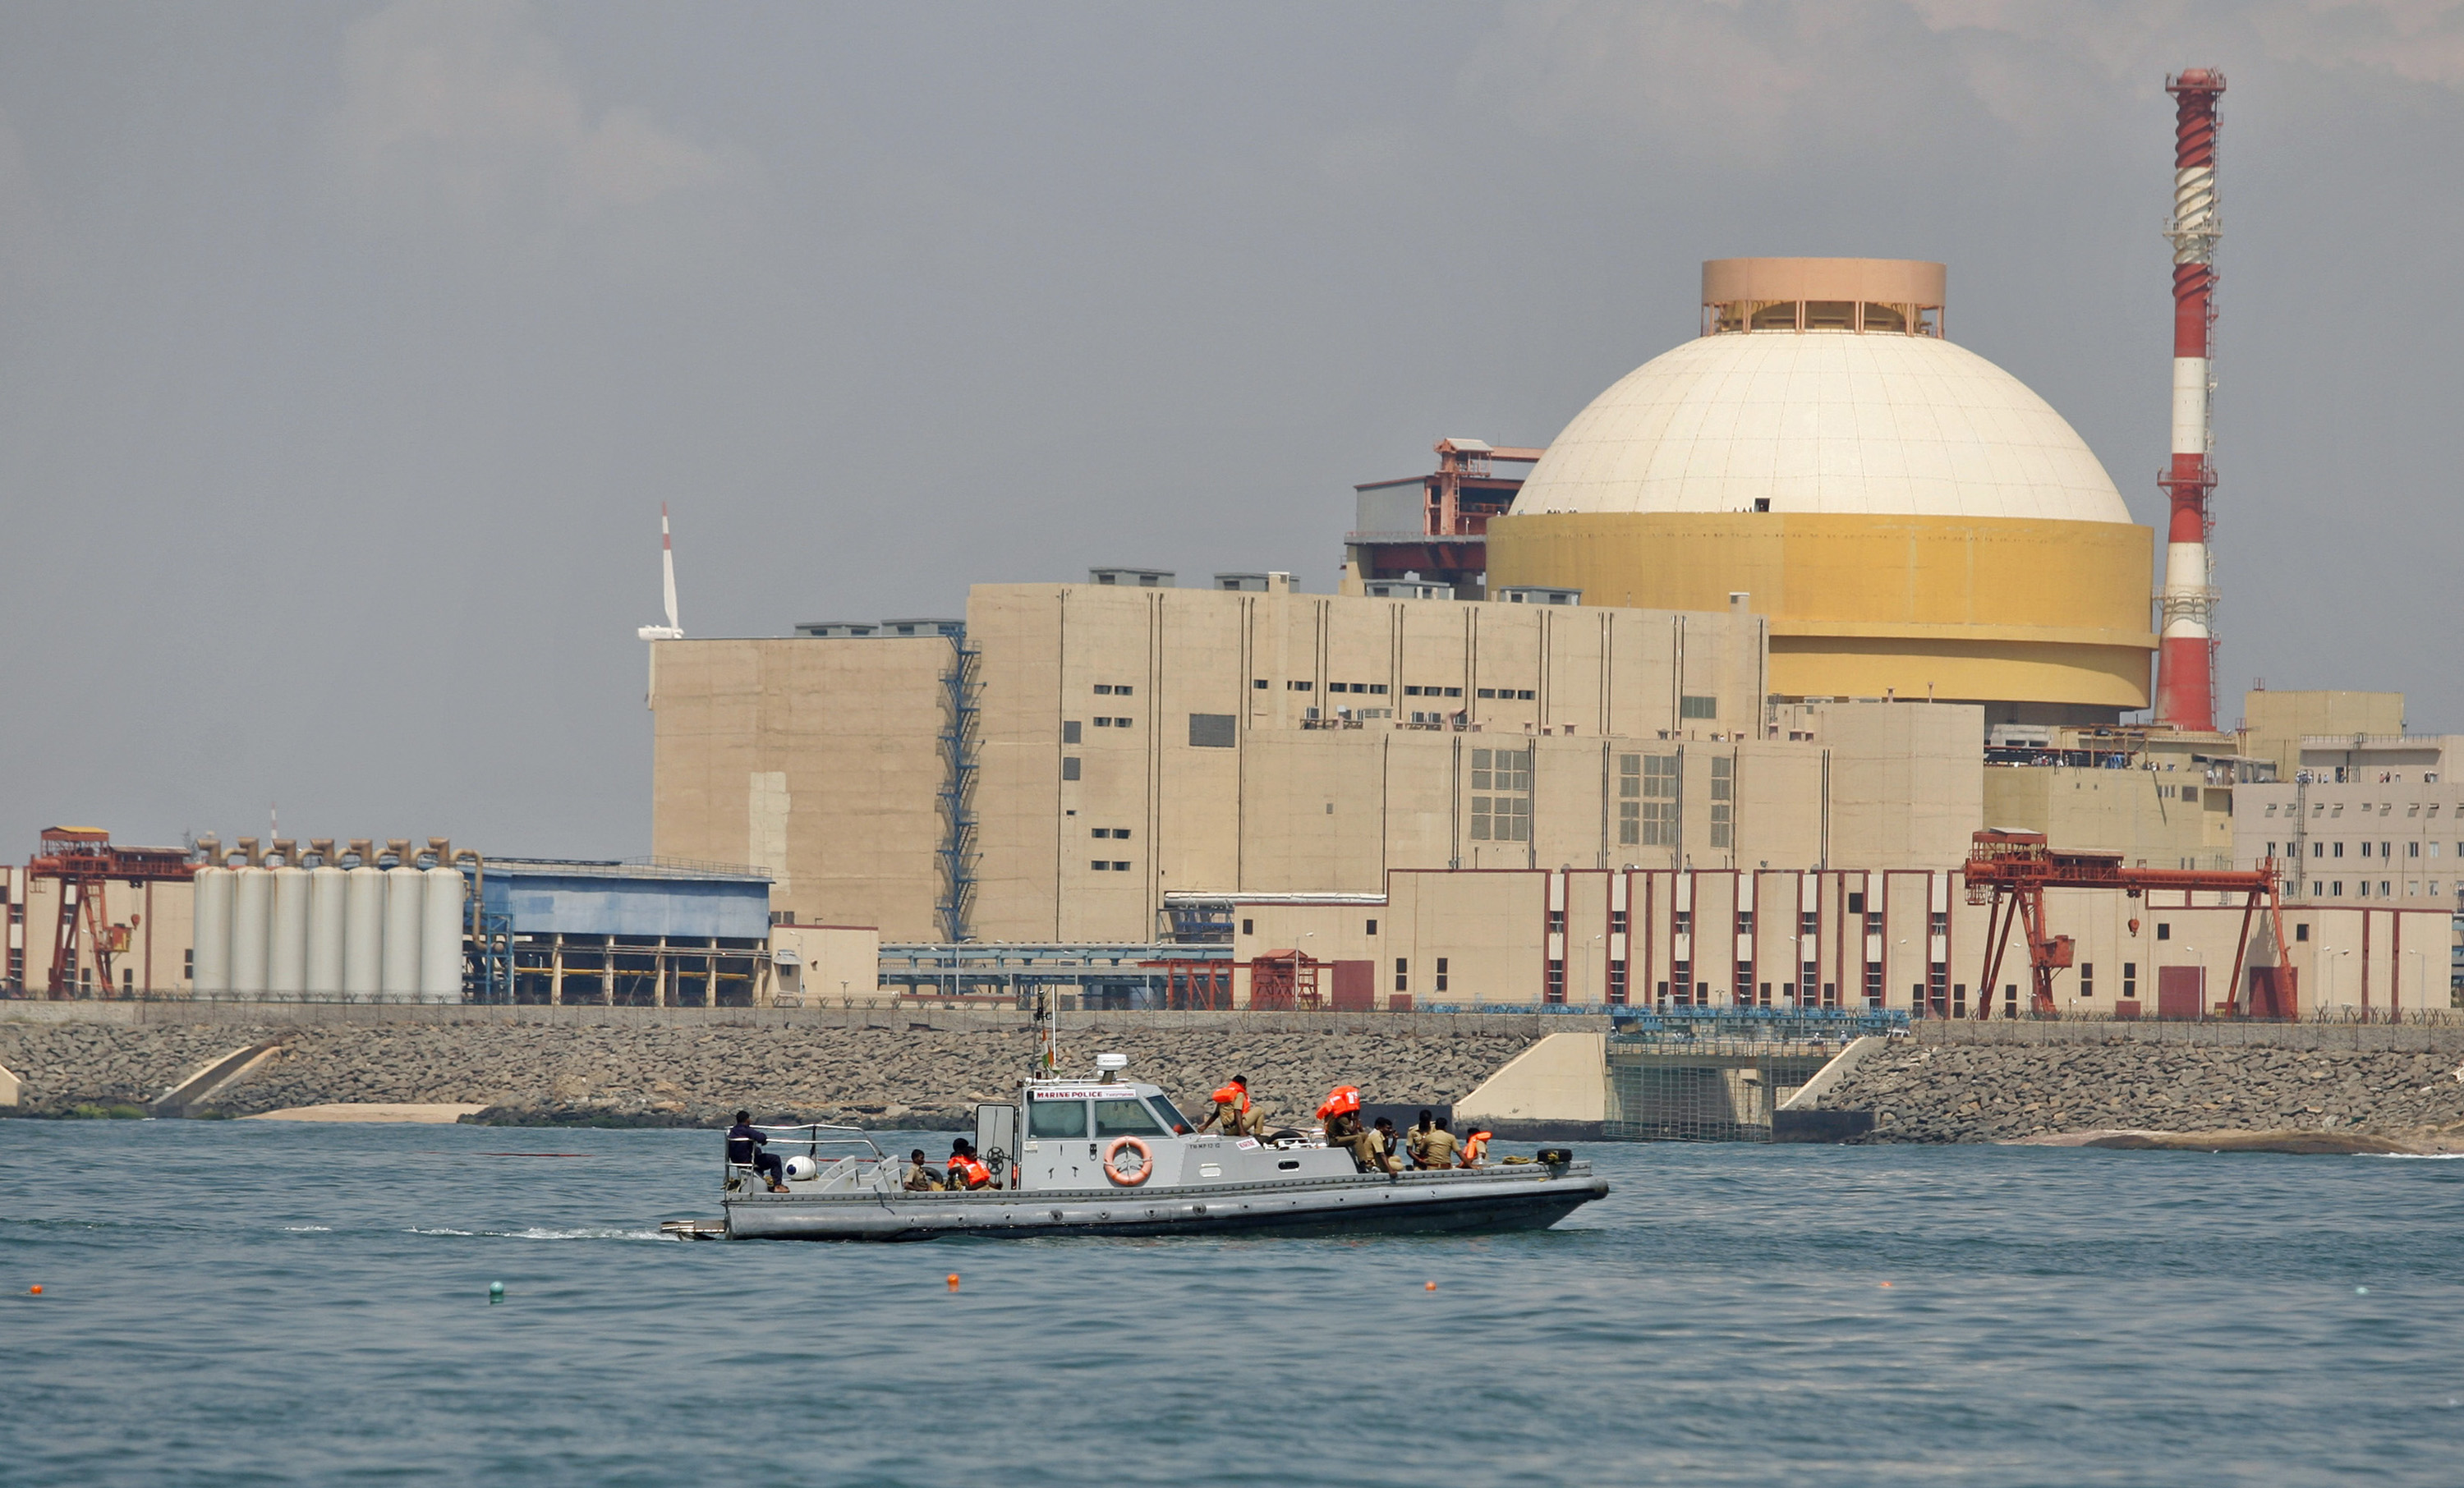 Second nuclear power unit at Kudankulam connected to grid